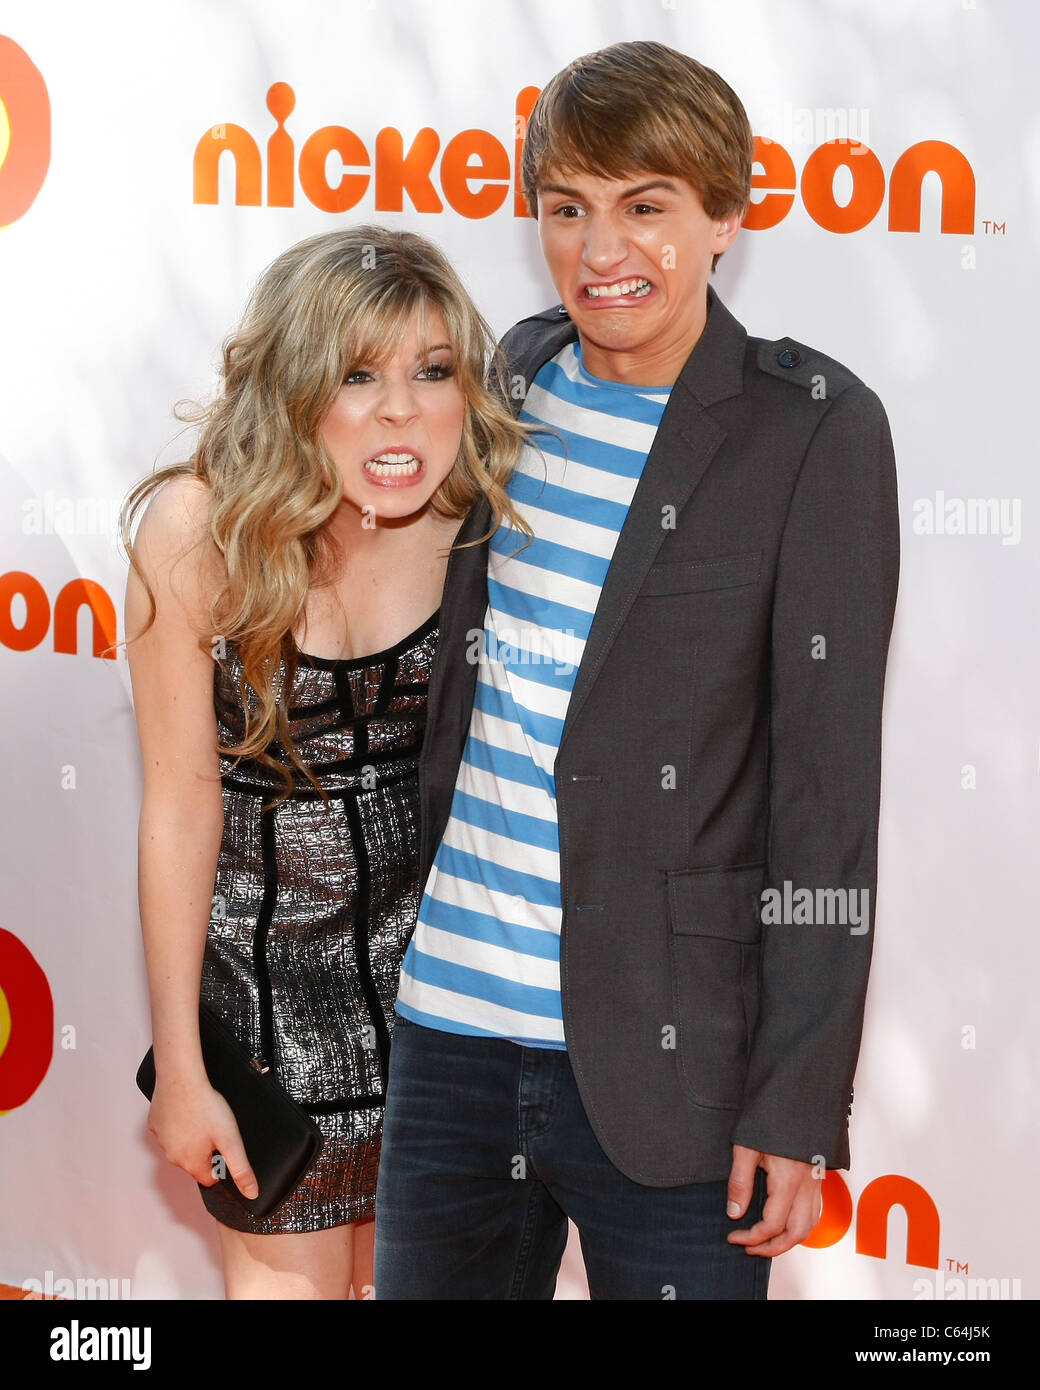 Jennette McCurdy, Lucas Cruikshank at arrivals for FRED: THE MOVIE Premiere, Paramount Theatre, Los Angeles, CA - Stock Image